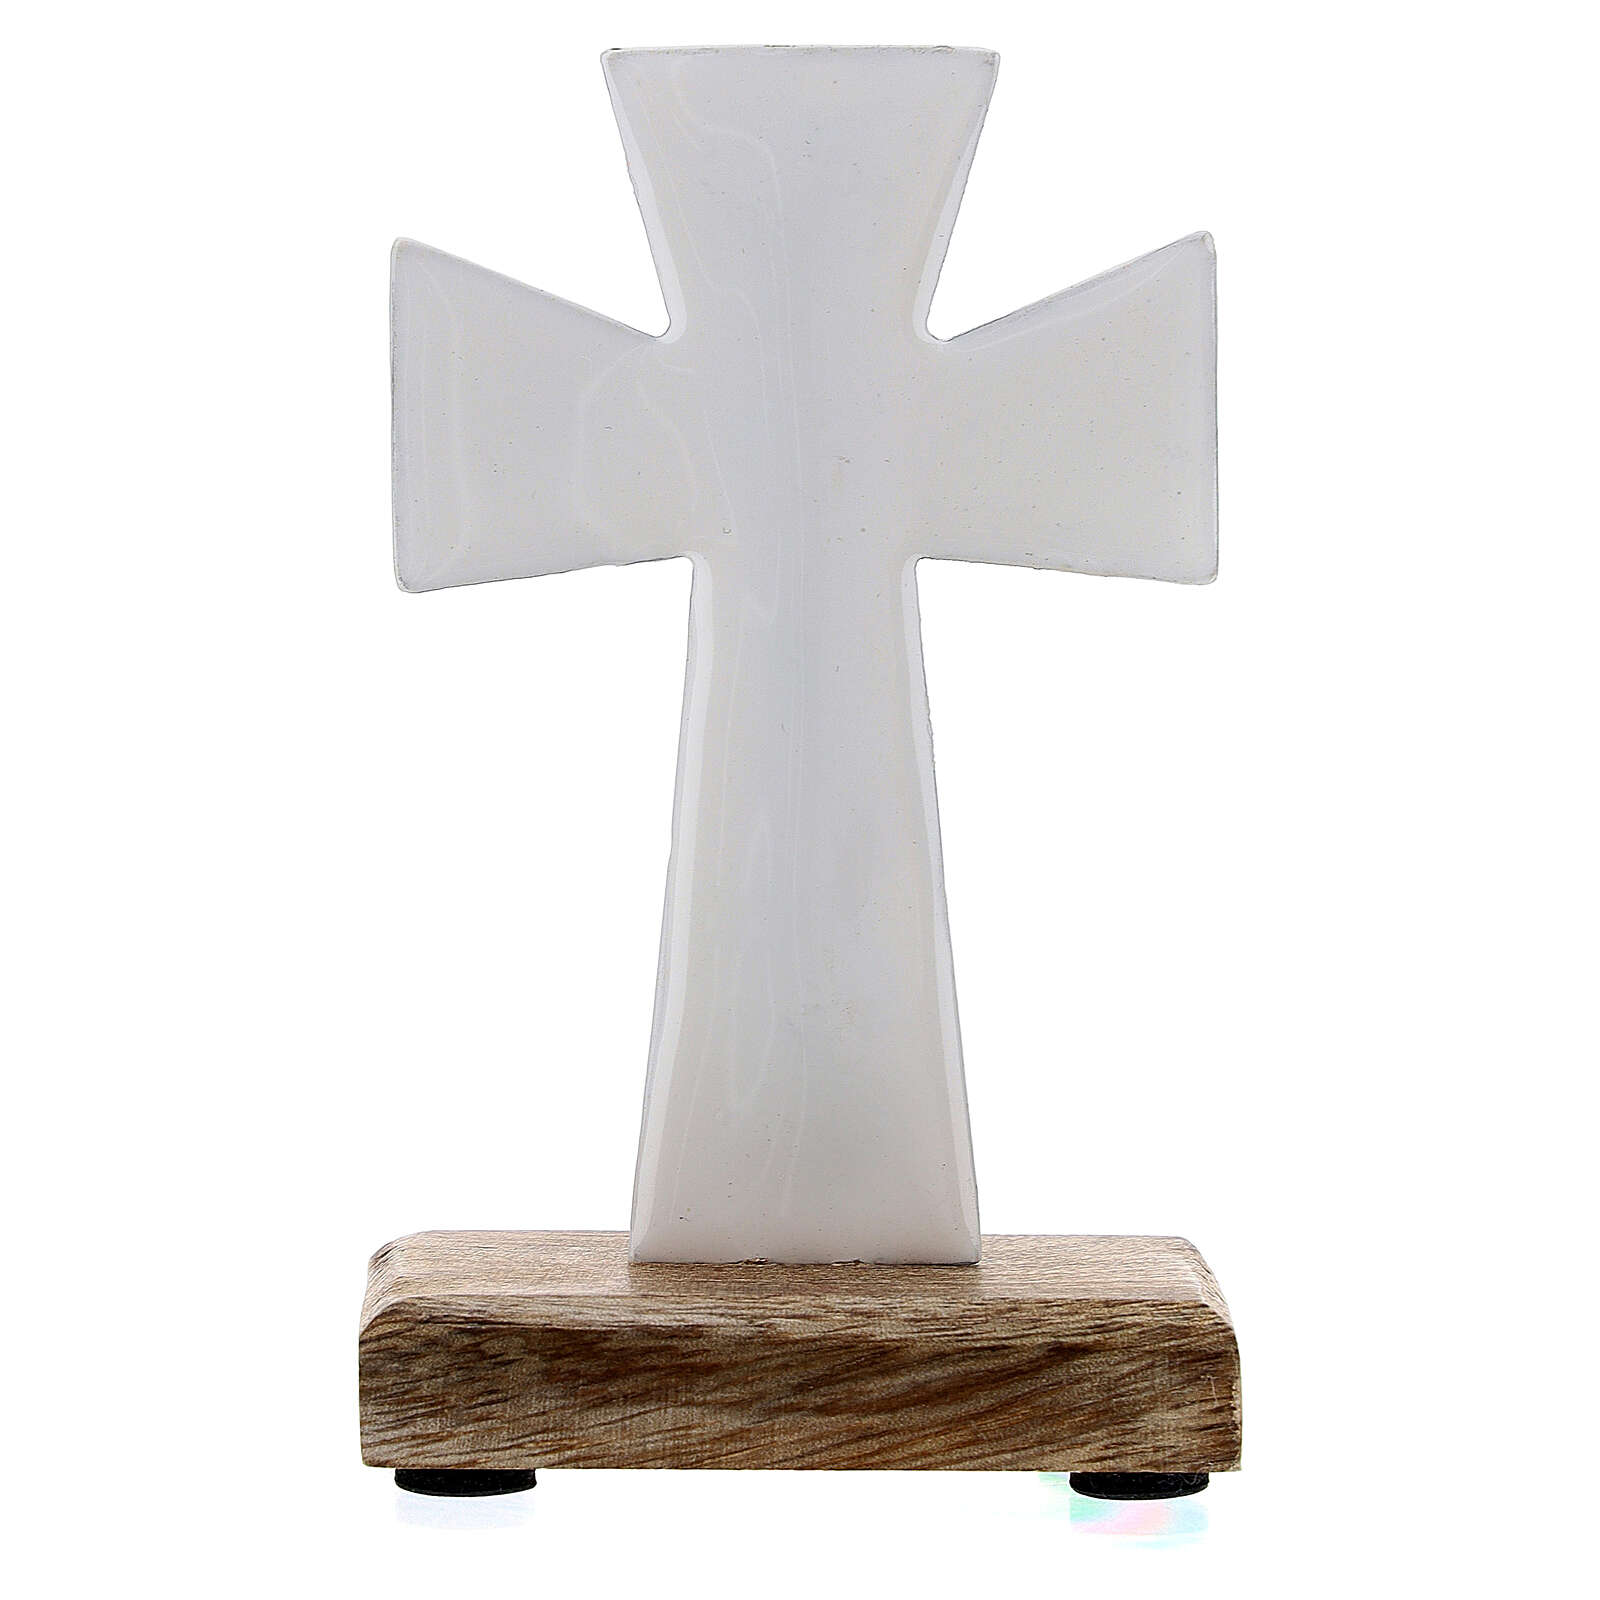 Table cross in white enamelled iron and wood base 4 in 4